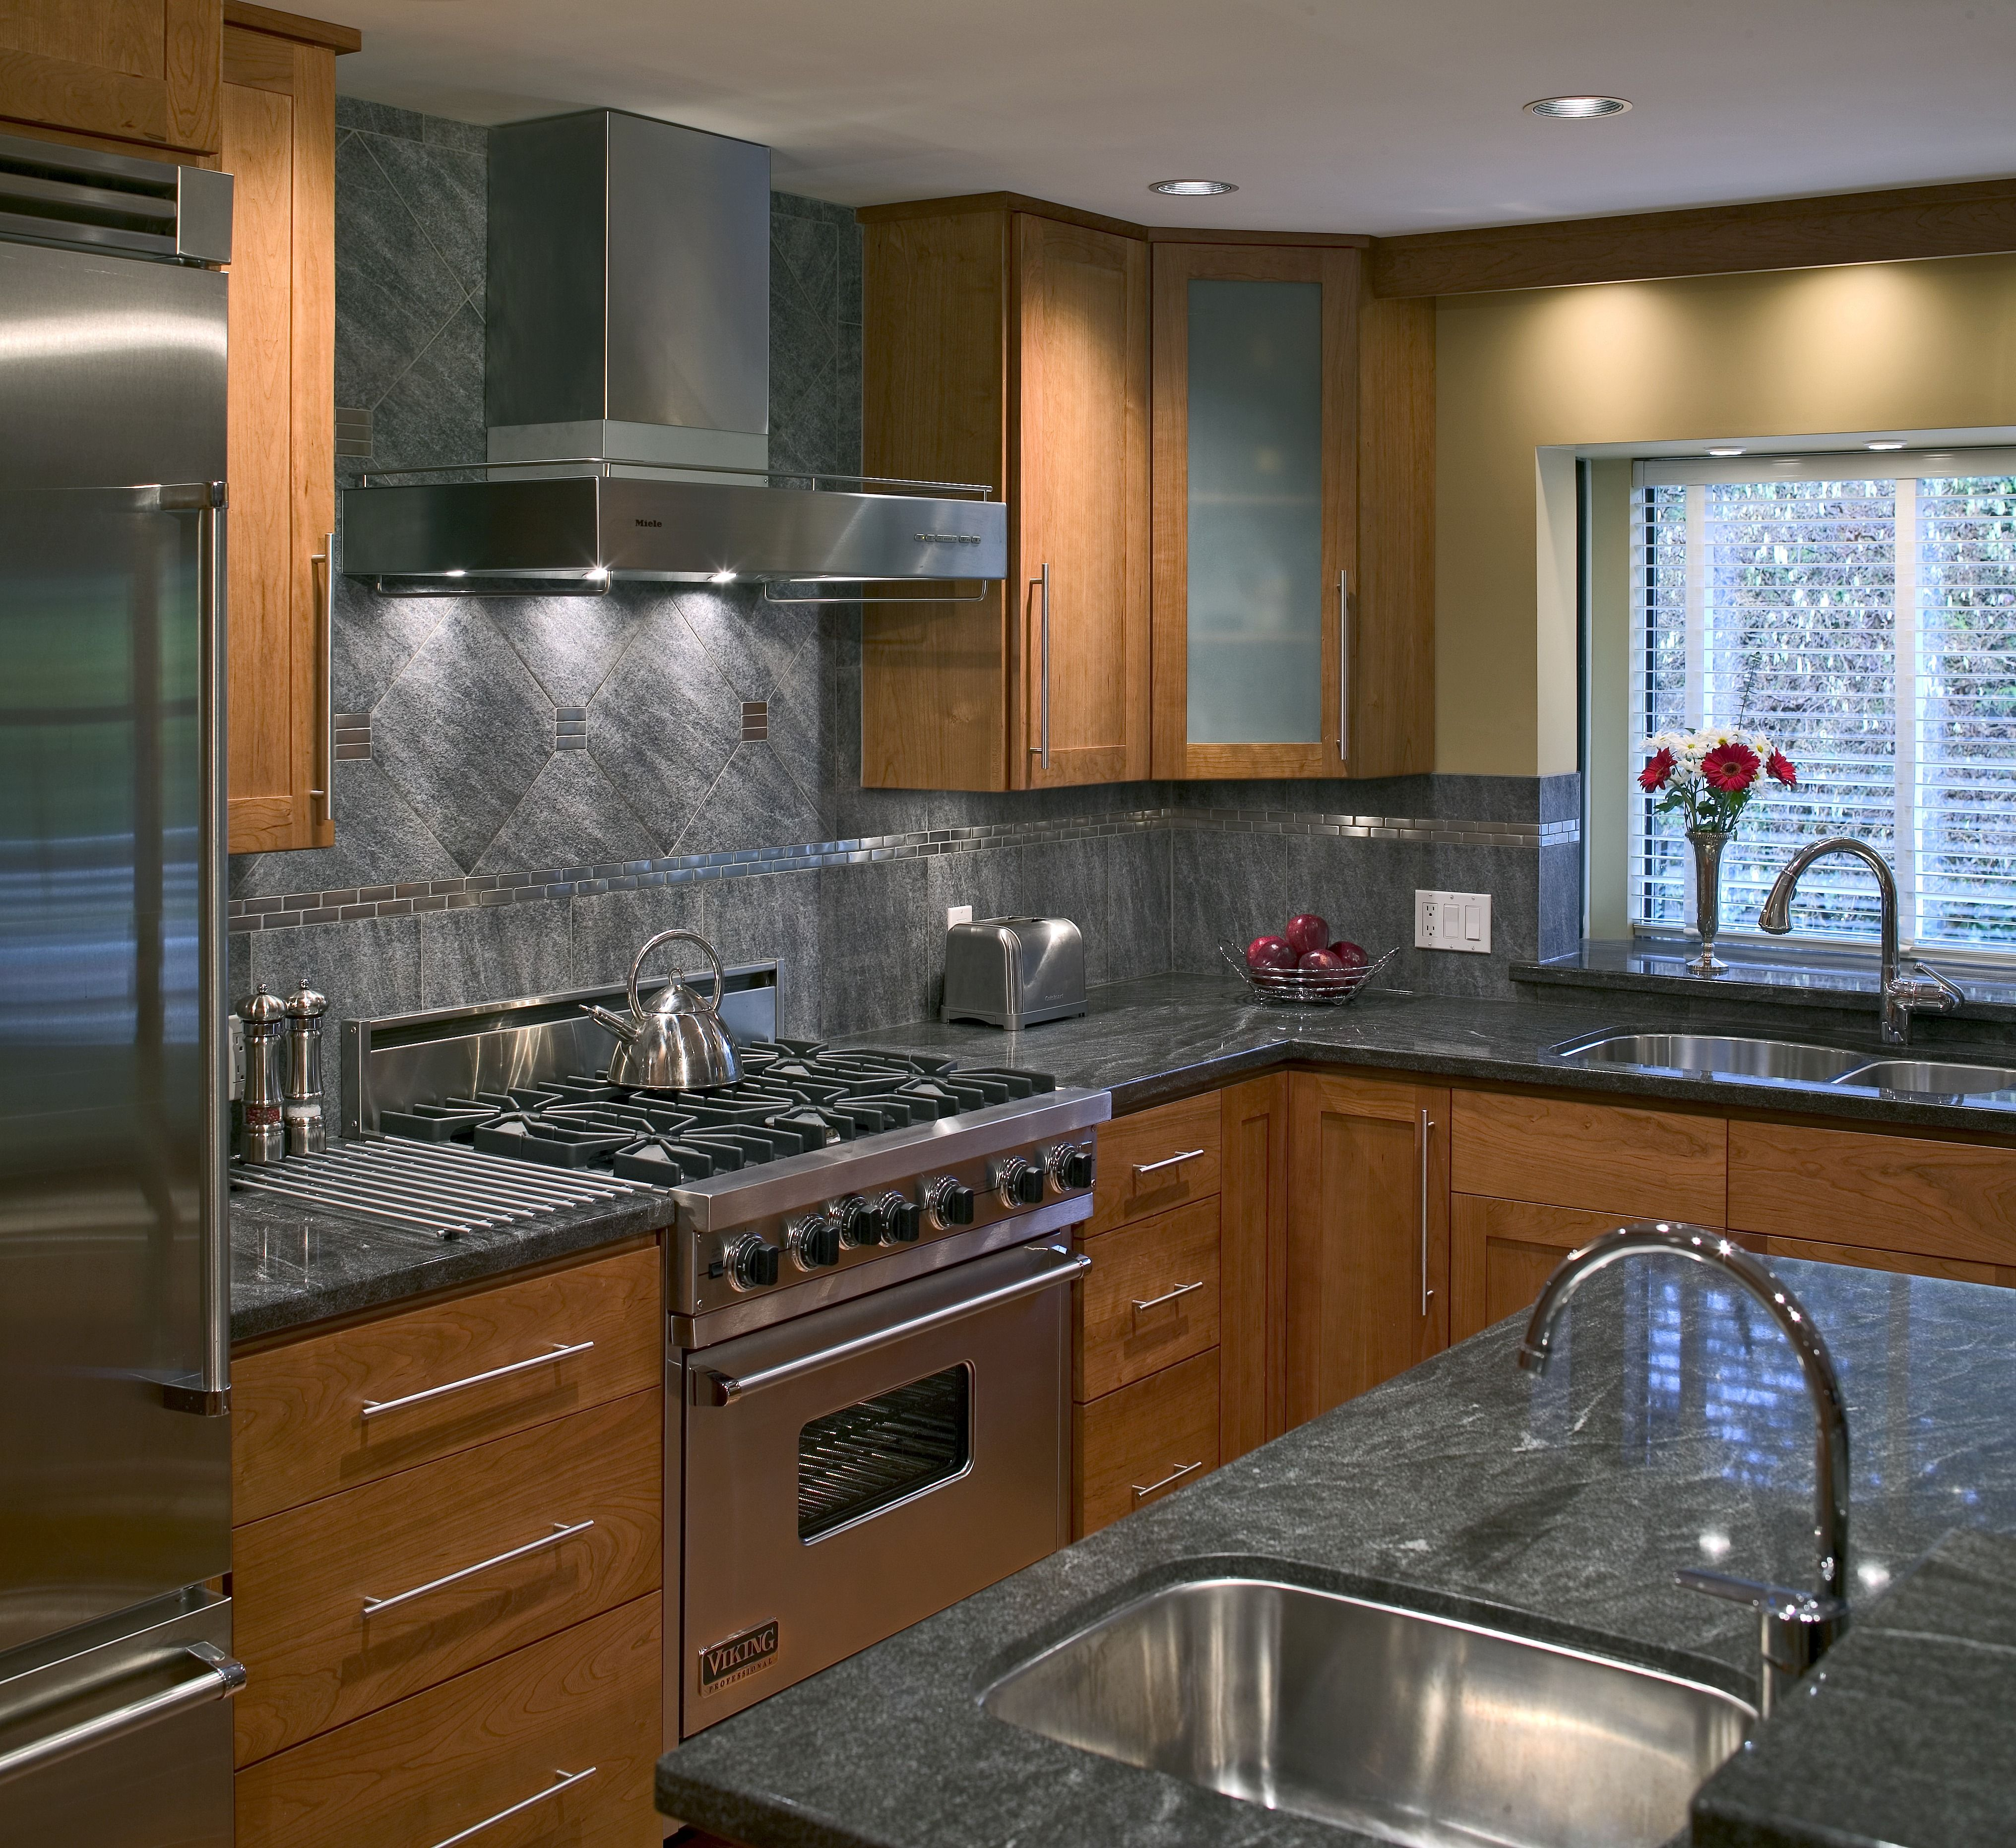 Kitchen Renovation Costs   How Much Does It Cost to ...